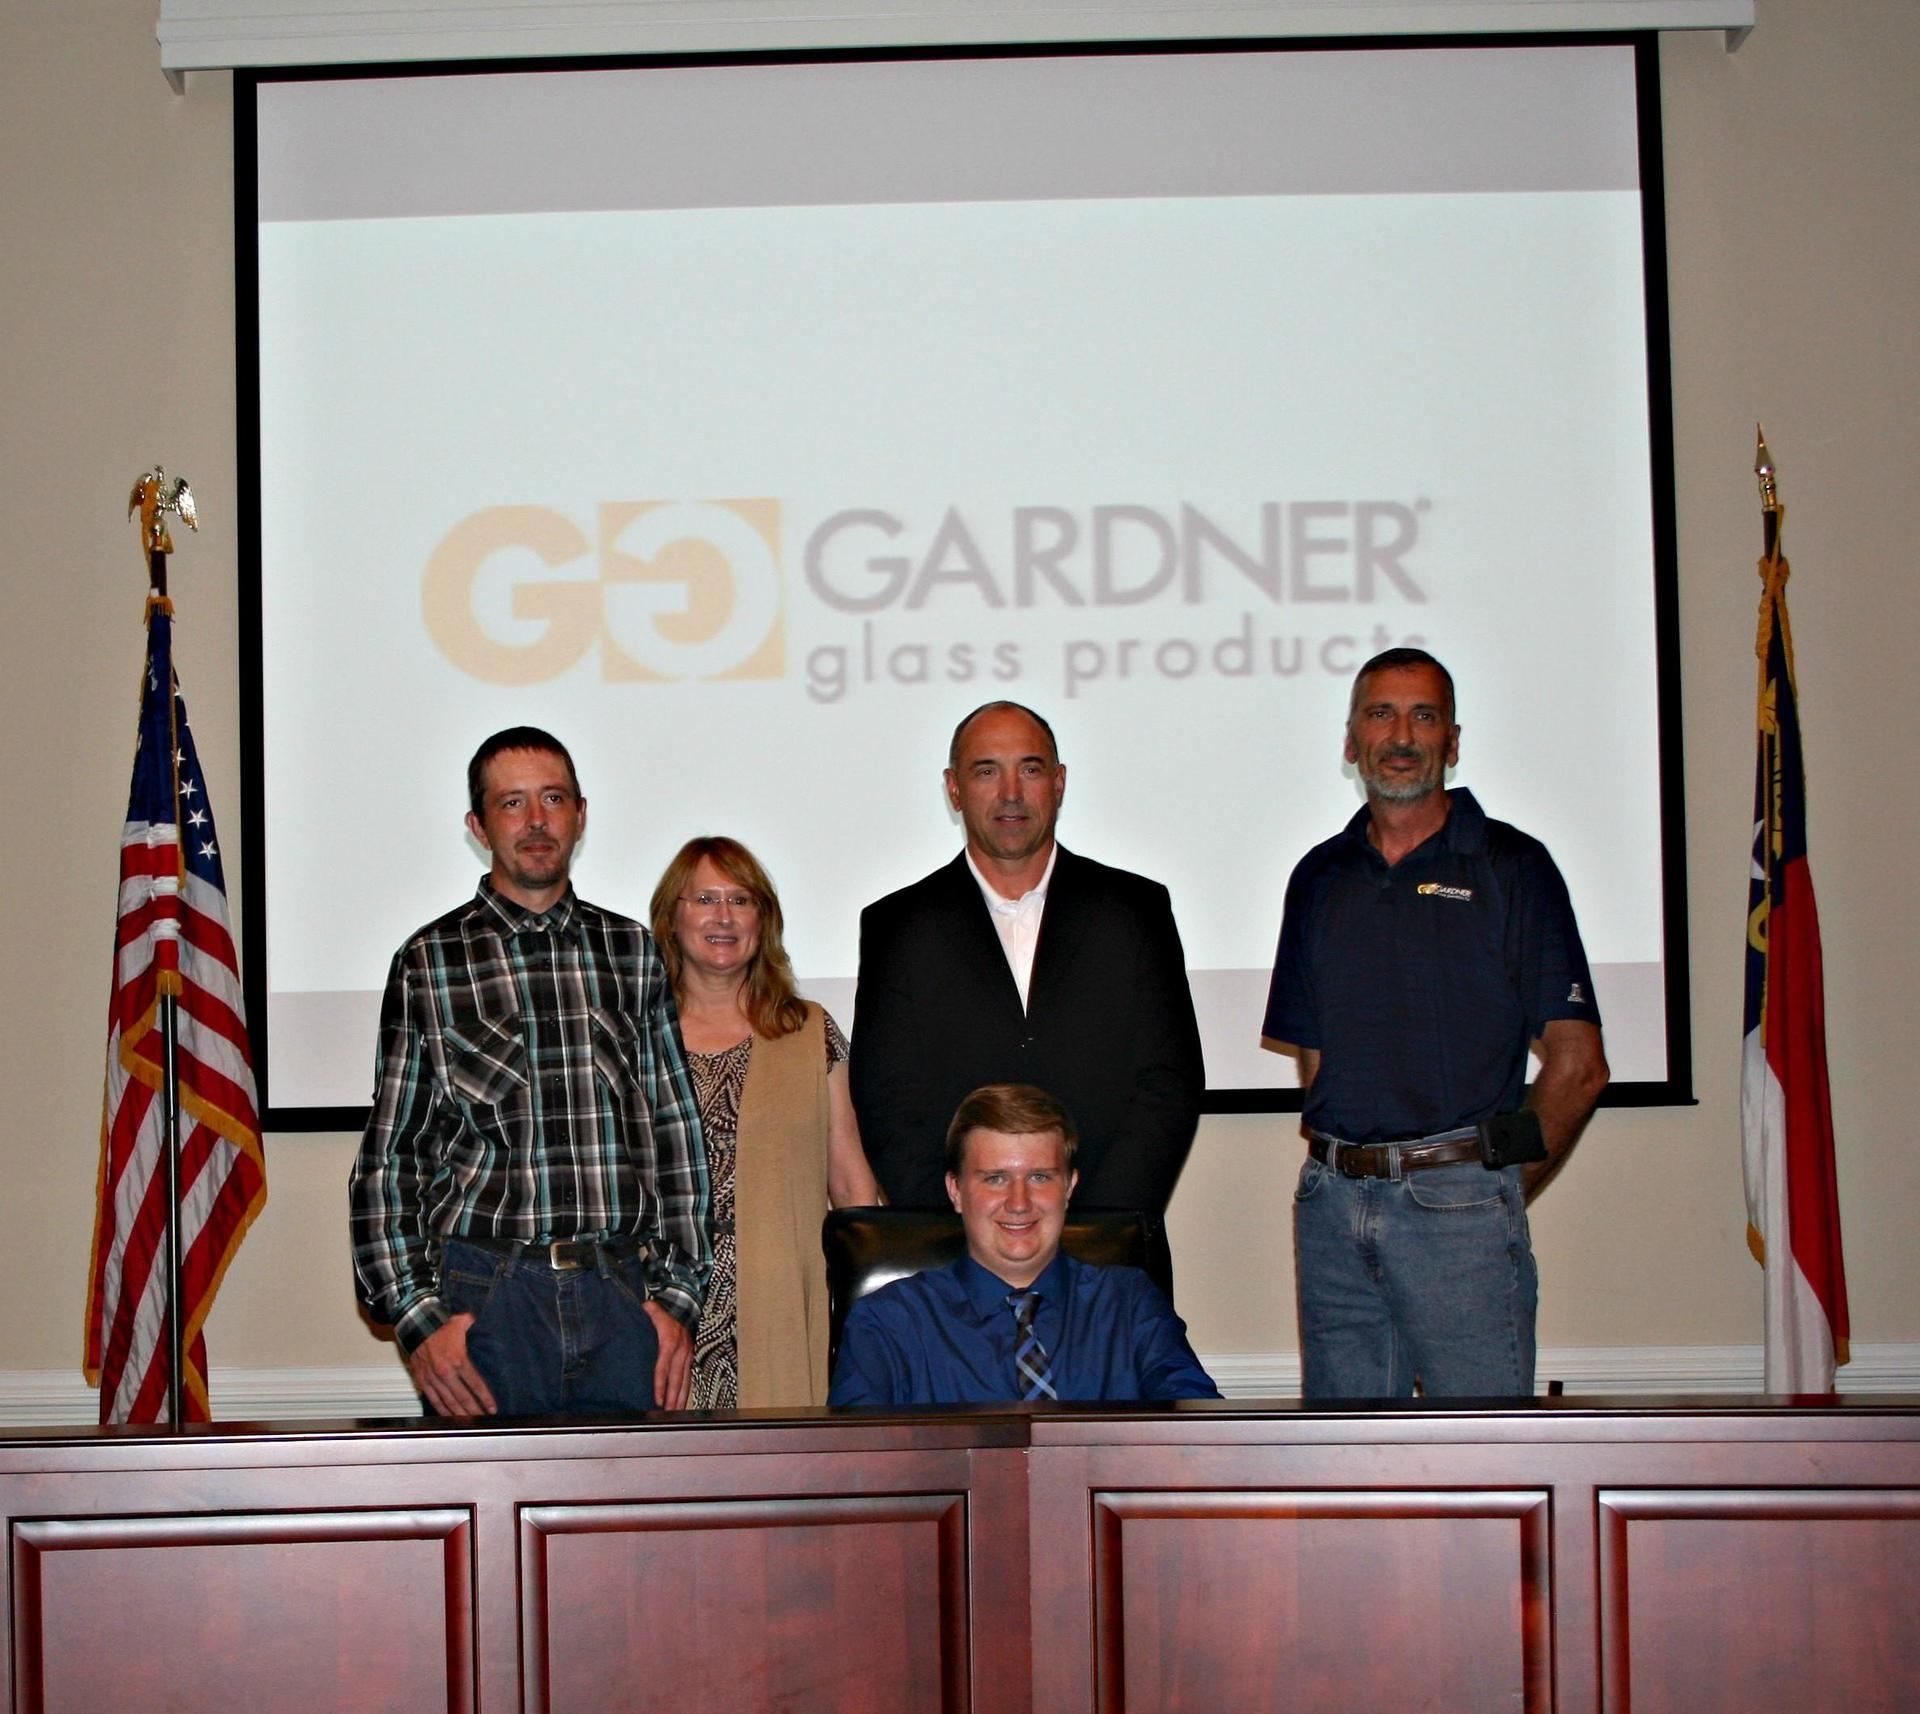 Tate Foster poses with his family in the Board Room during apprenticeship signing.